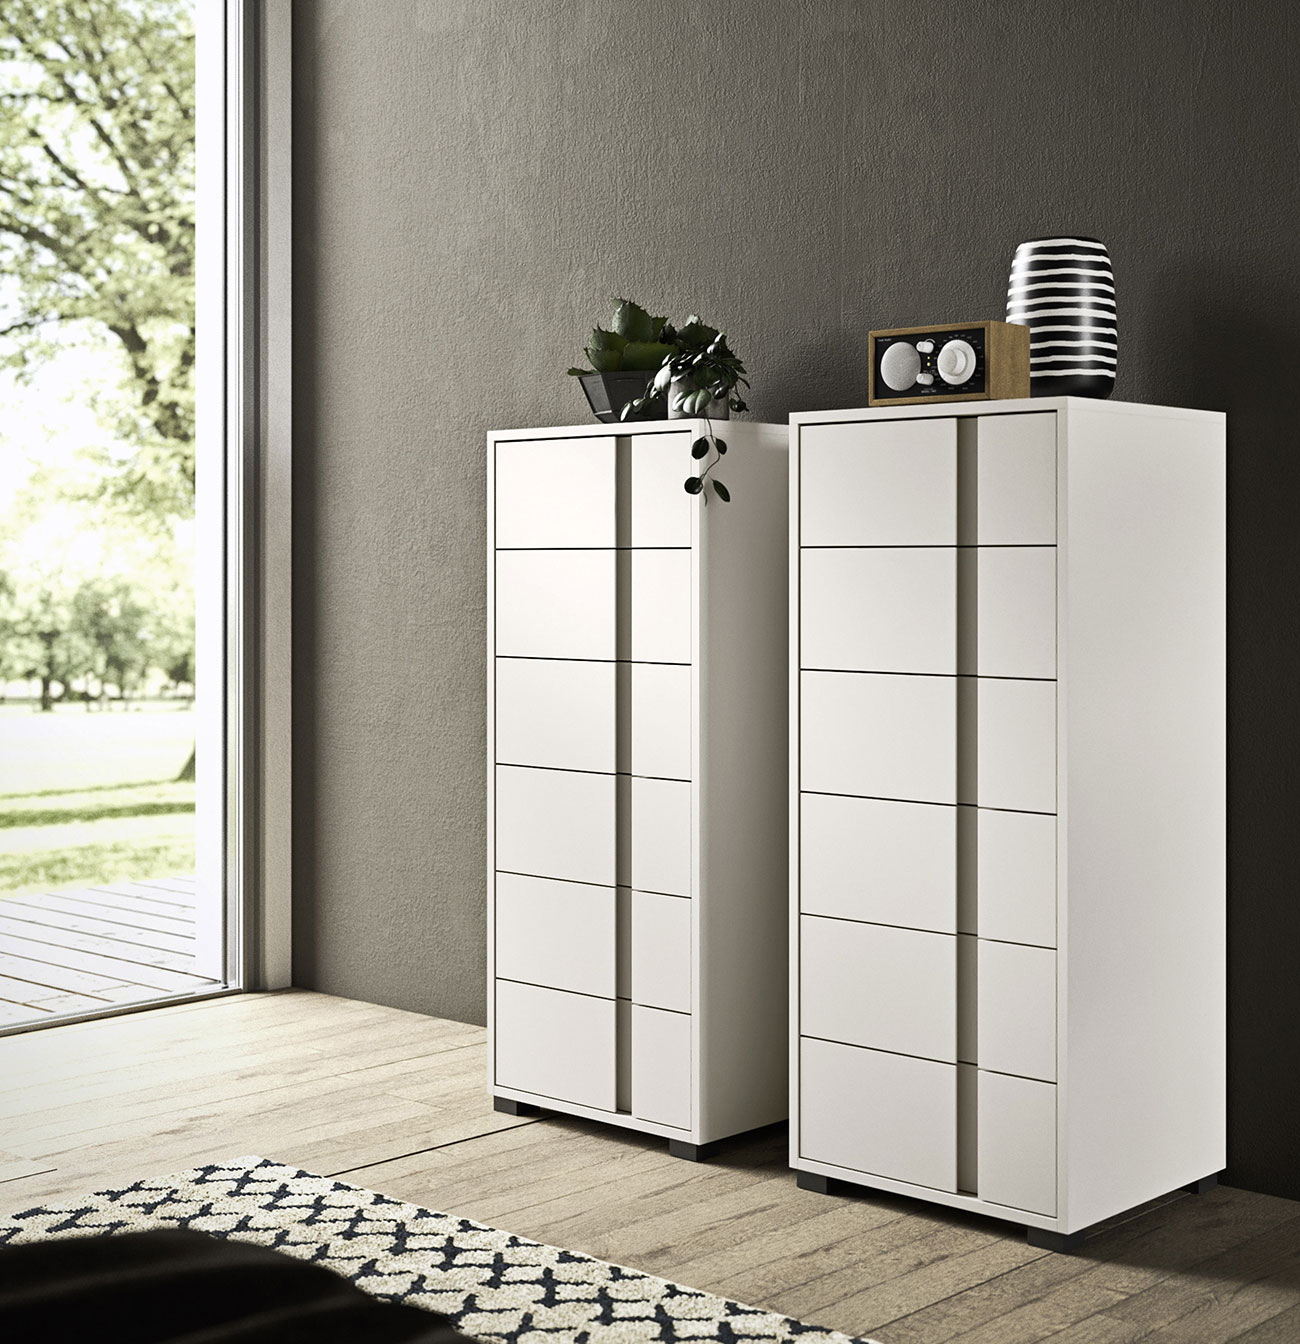 contemporary style chests of drawers with tone-on-tone finish